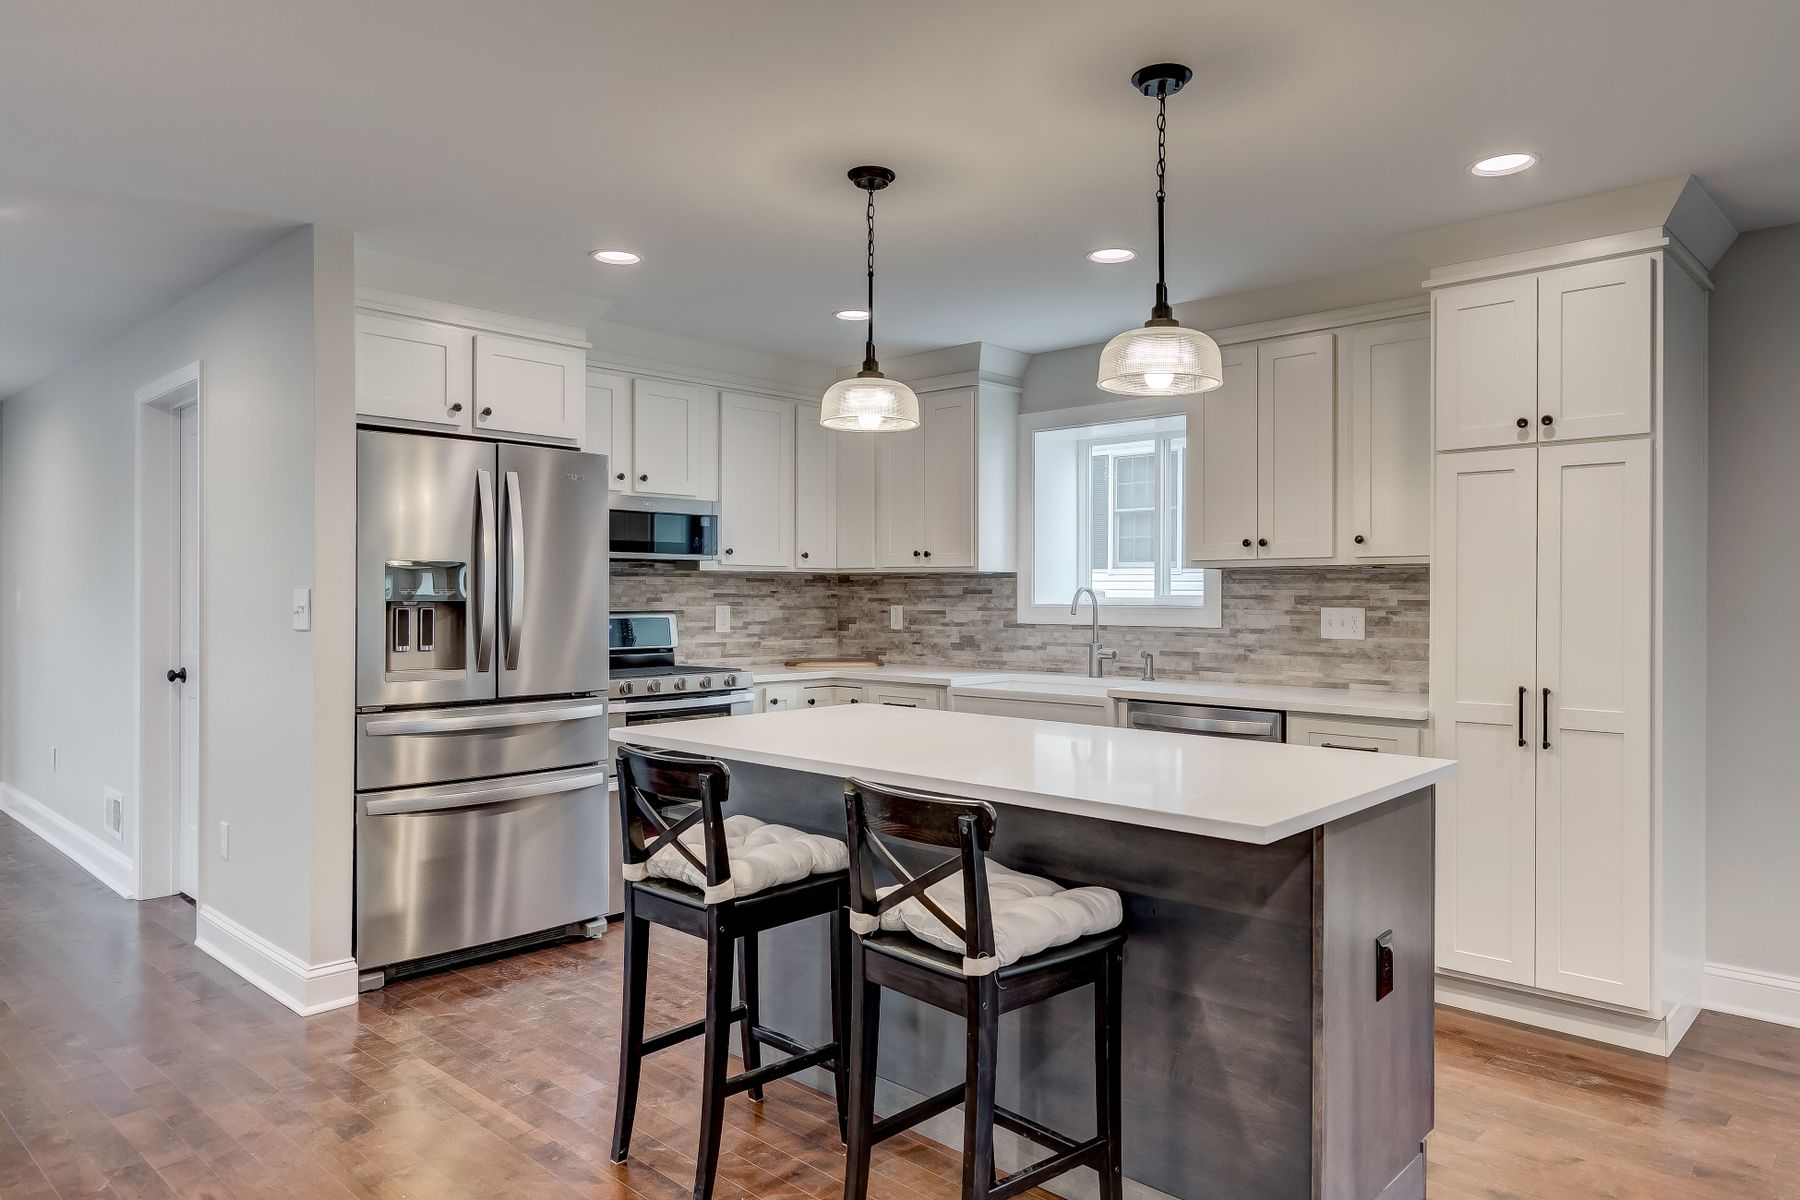 New Kitchen Builder and Construction in Towson